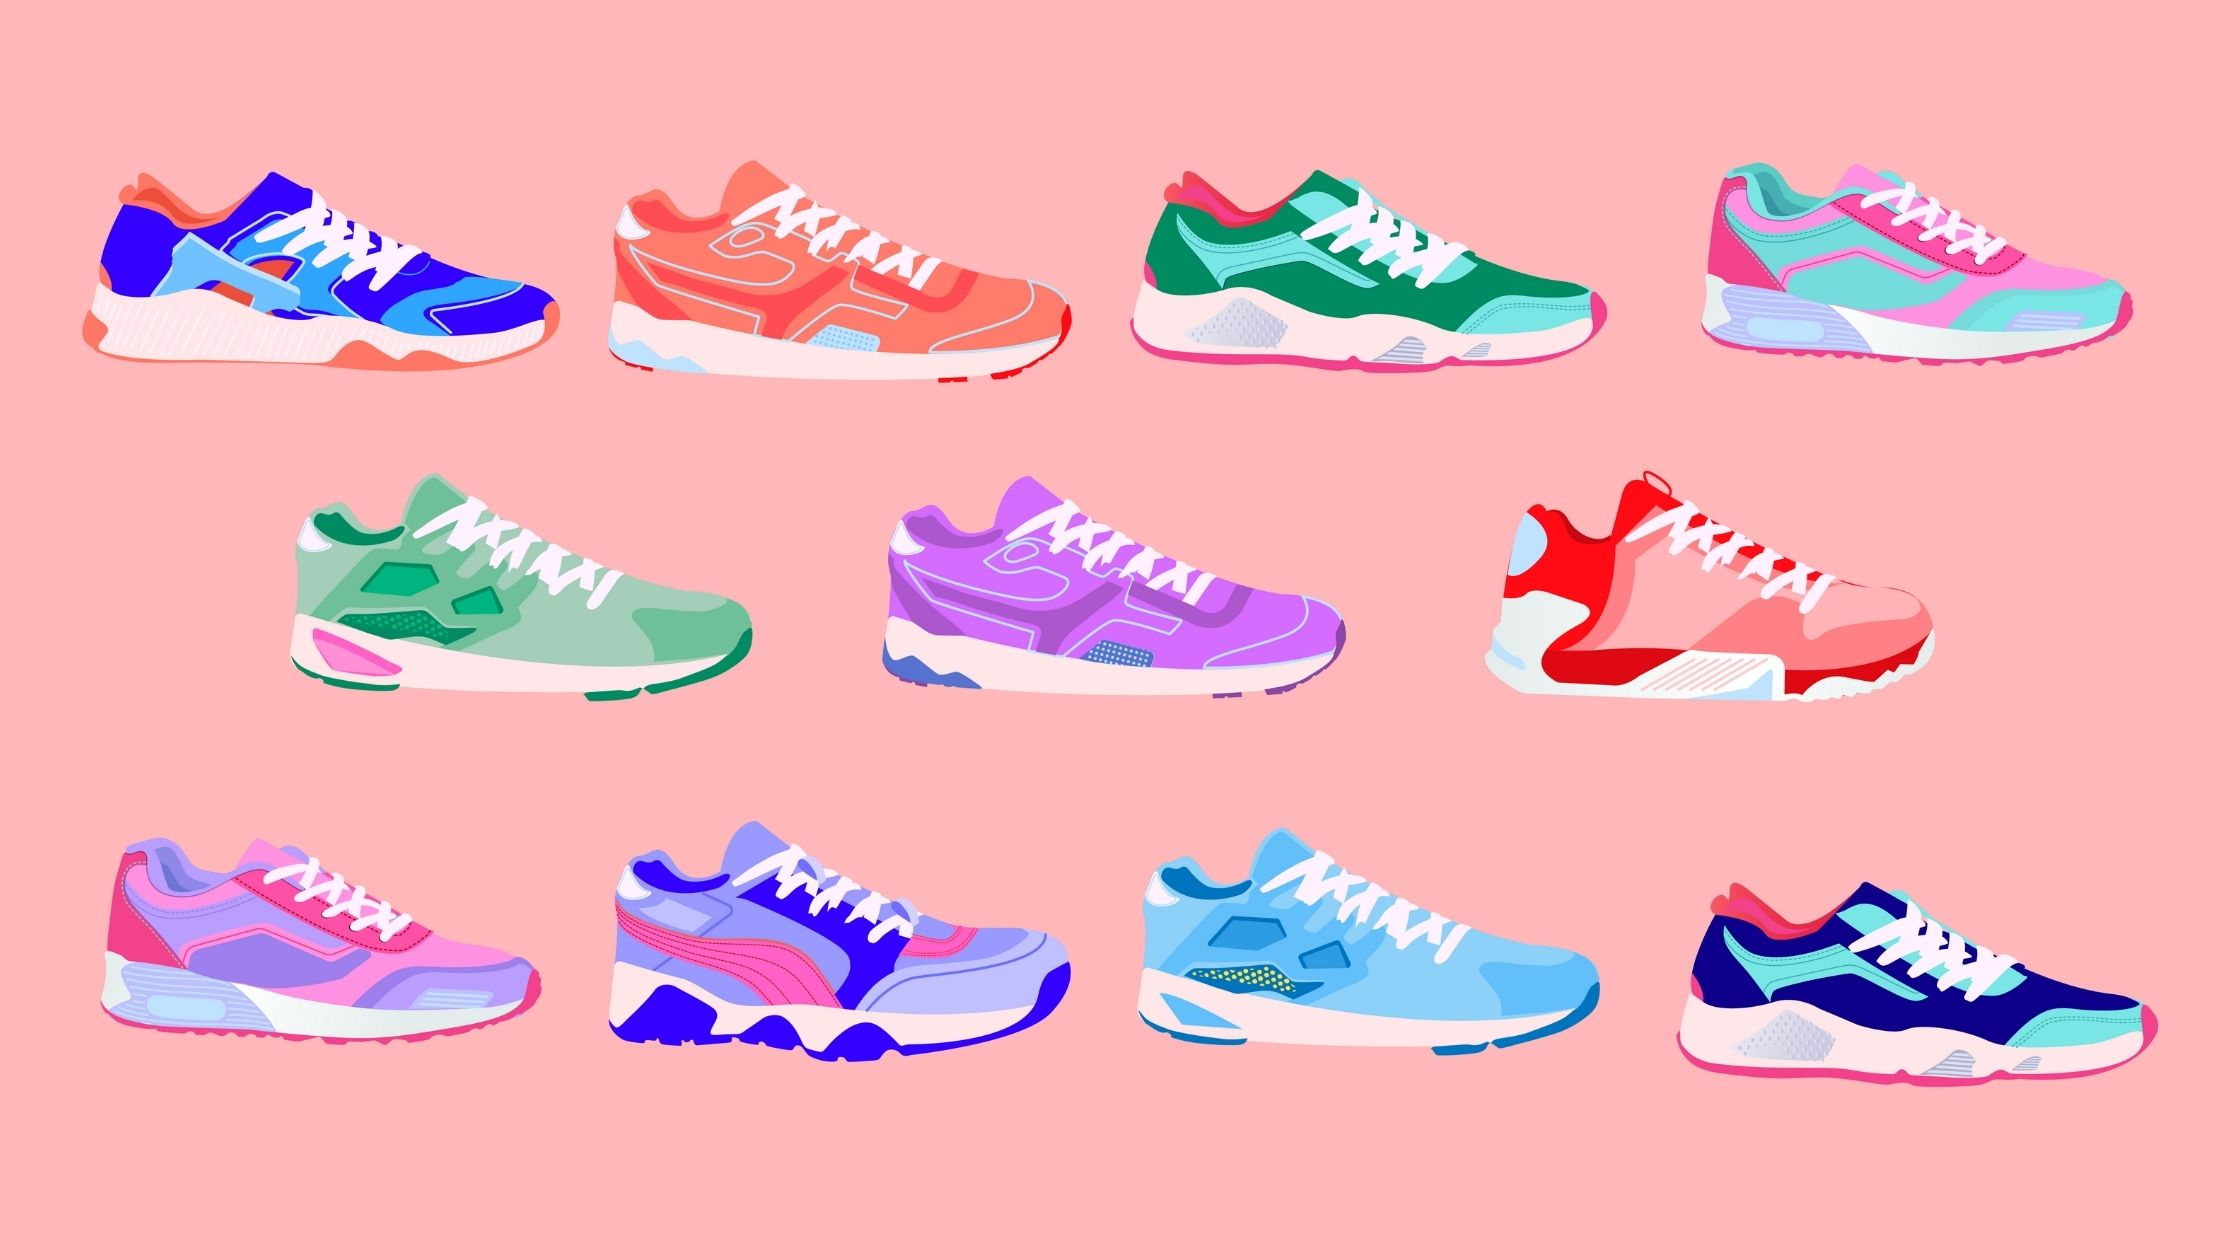 My Journey To Finding The Perfect Pair Of Workout Shoes (And What Ecommerce Isn't Getting Right)